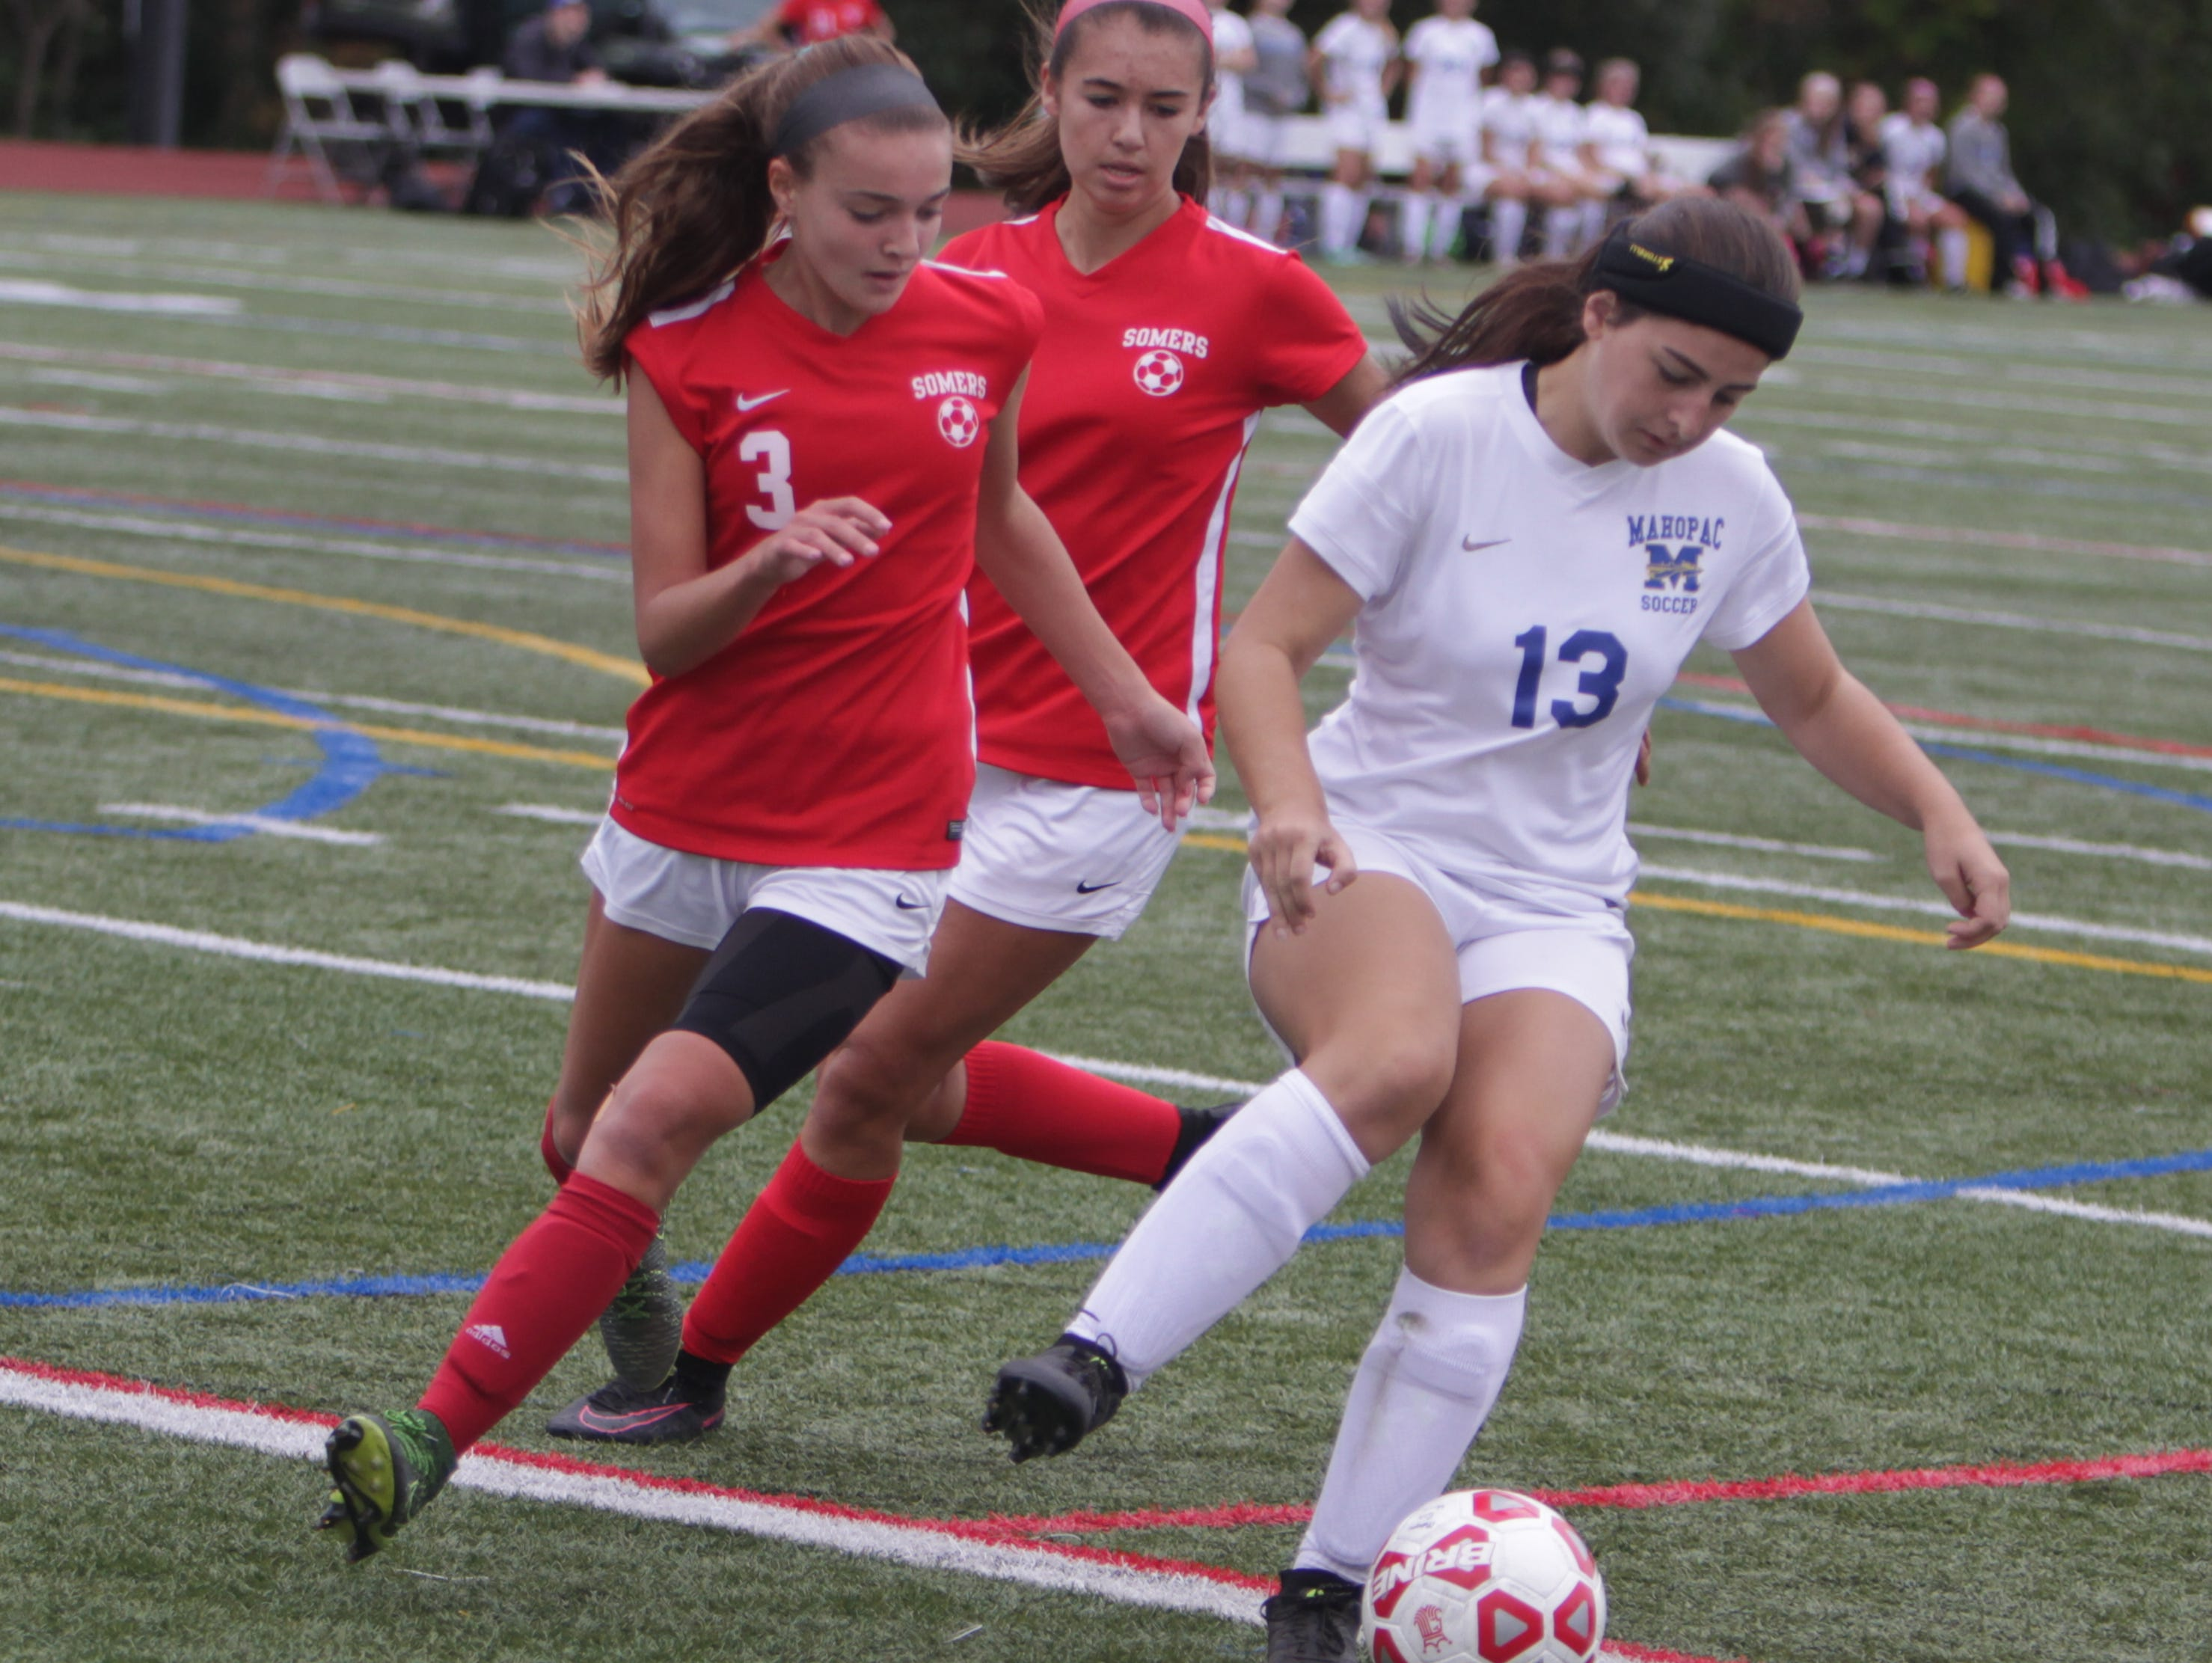 Somers closes out the regular season against Arlington and Yorktown.